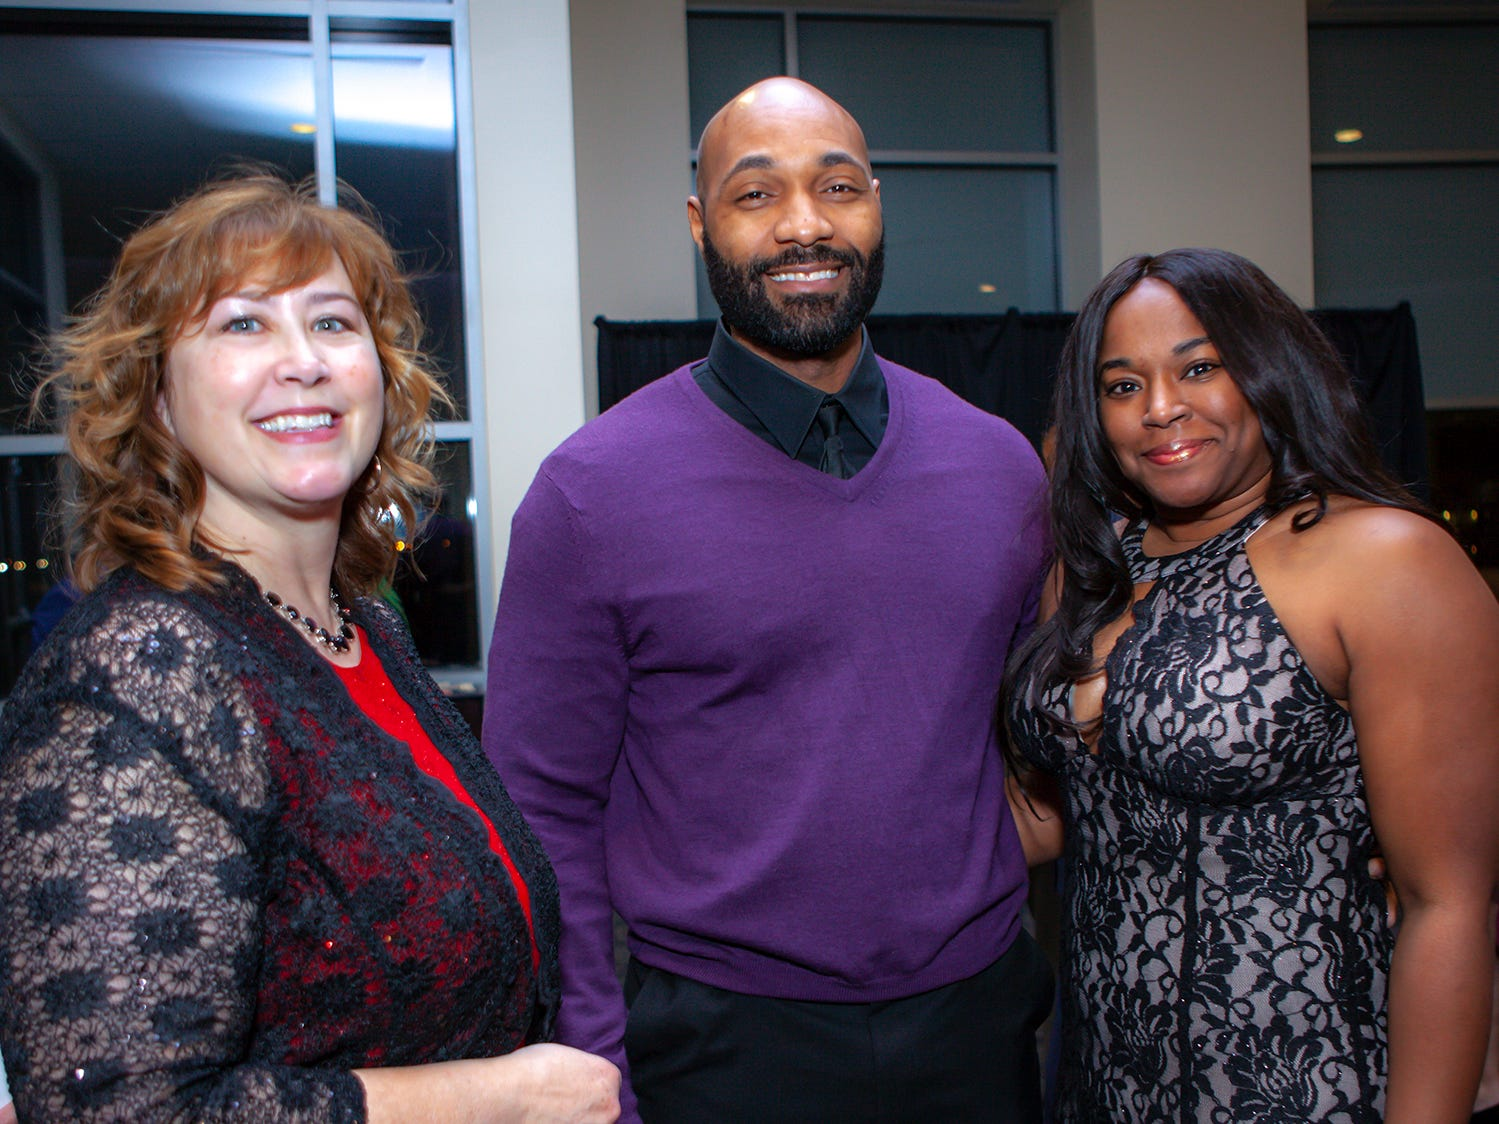 Jolene Radnotti, Shomari Louis and Shavon Davis-Louis at the 2019 Excellence in Education Gala, hosted by the City Schools Foundation on Friday, Jan. 25, 2019 at Stones River Country Club in Murfreesboro.